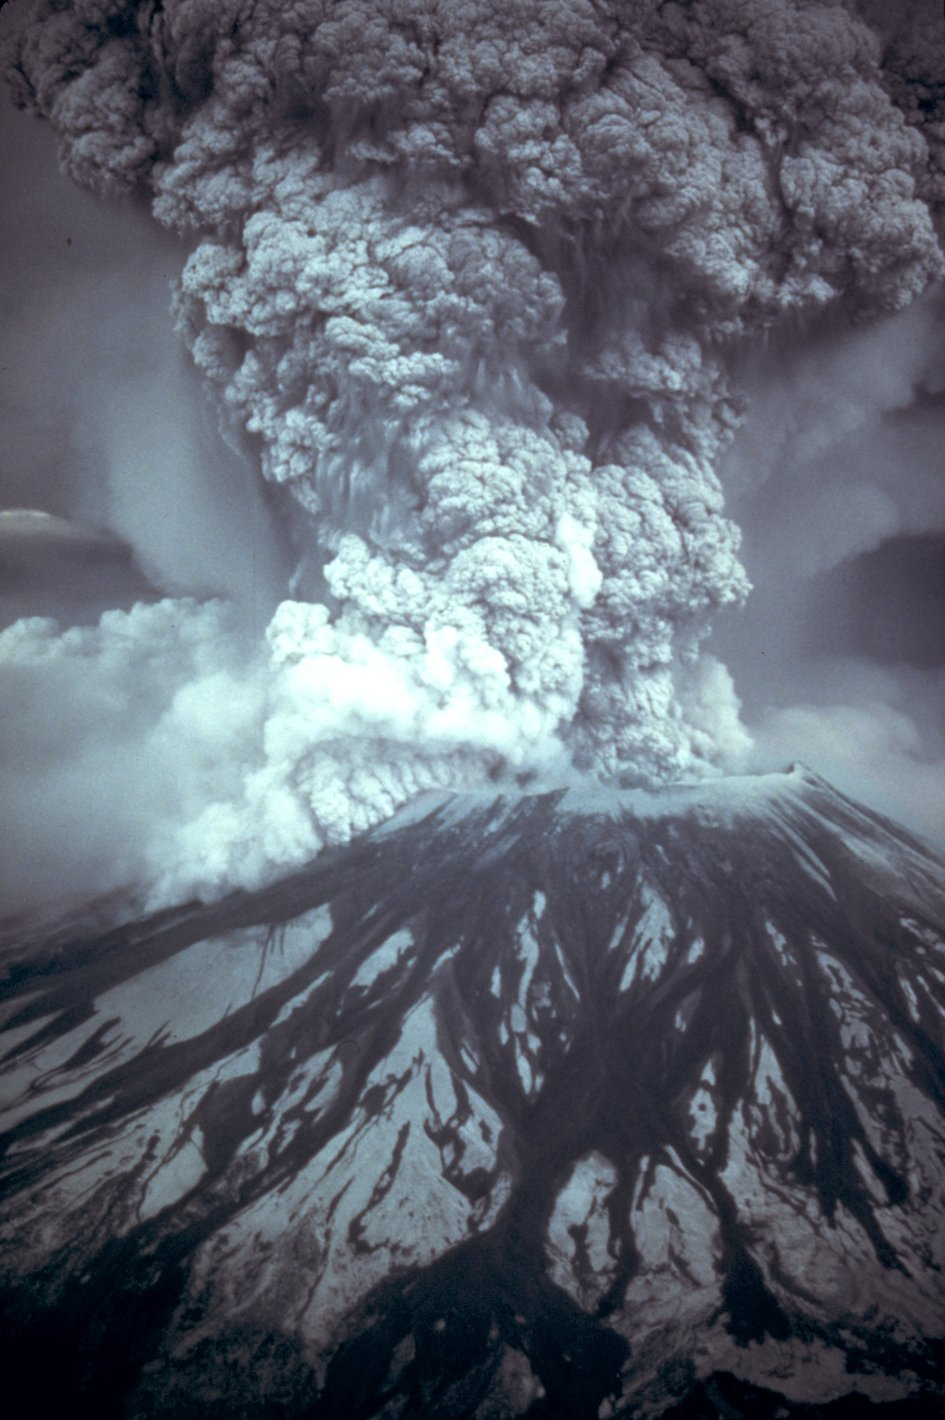 On May 18, 1980, at 8:32 a.m. Pacific Daylight Time, a magnitude 5.1 earthquake shook Mount St. Helens.